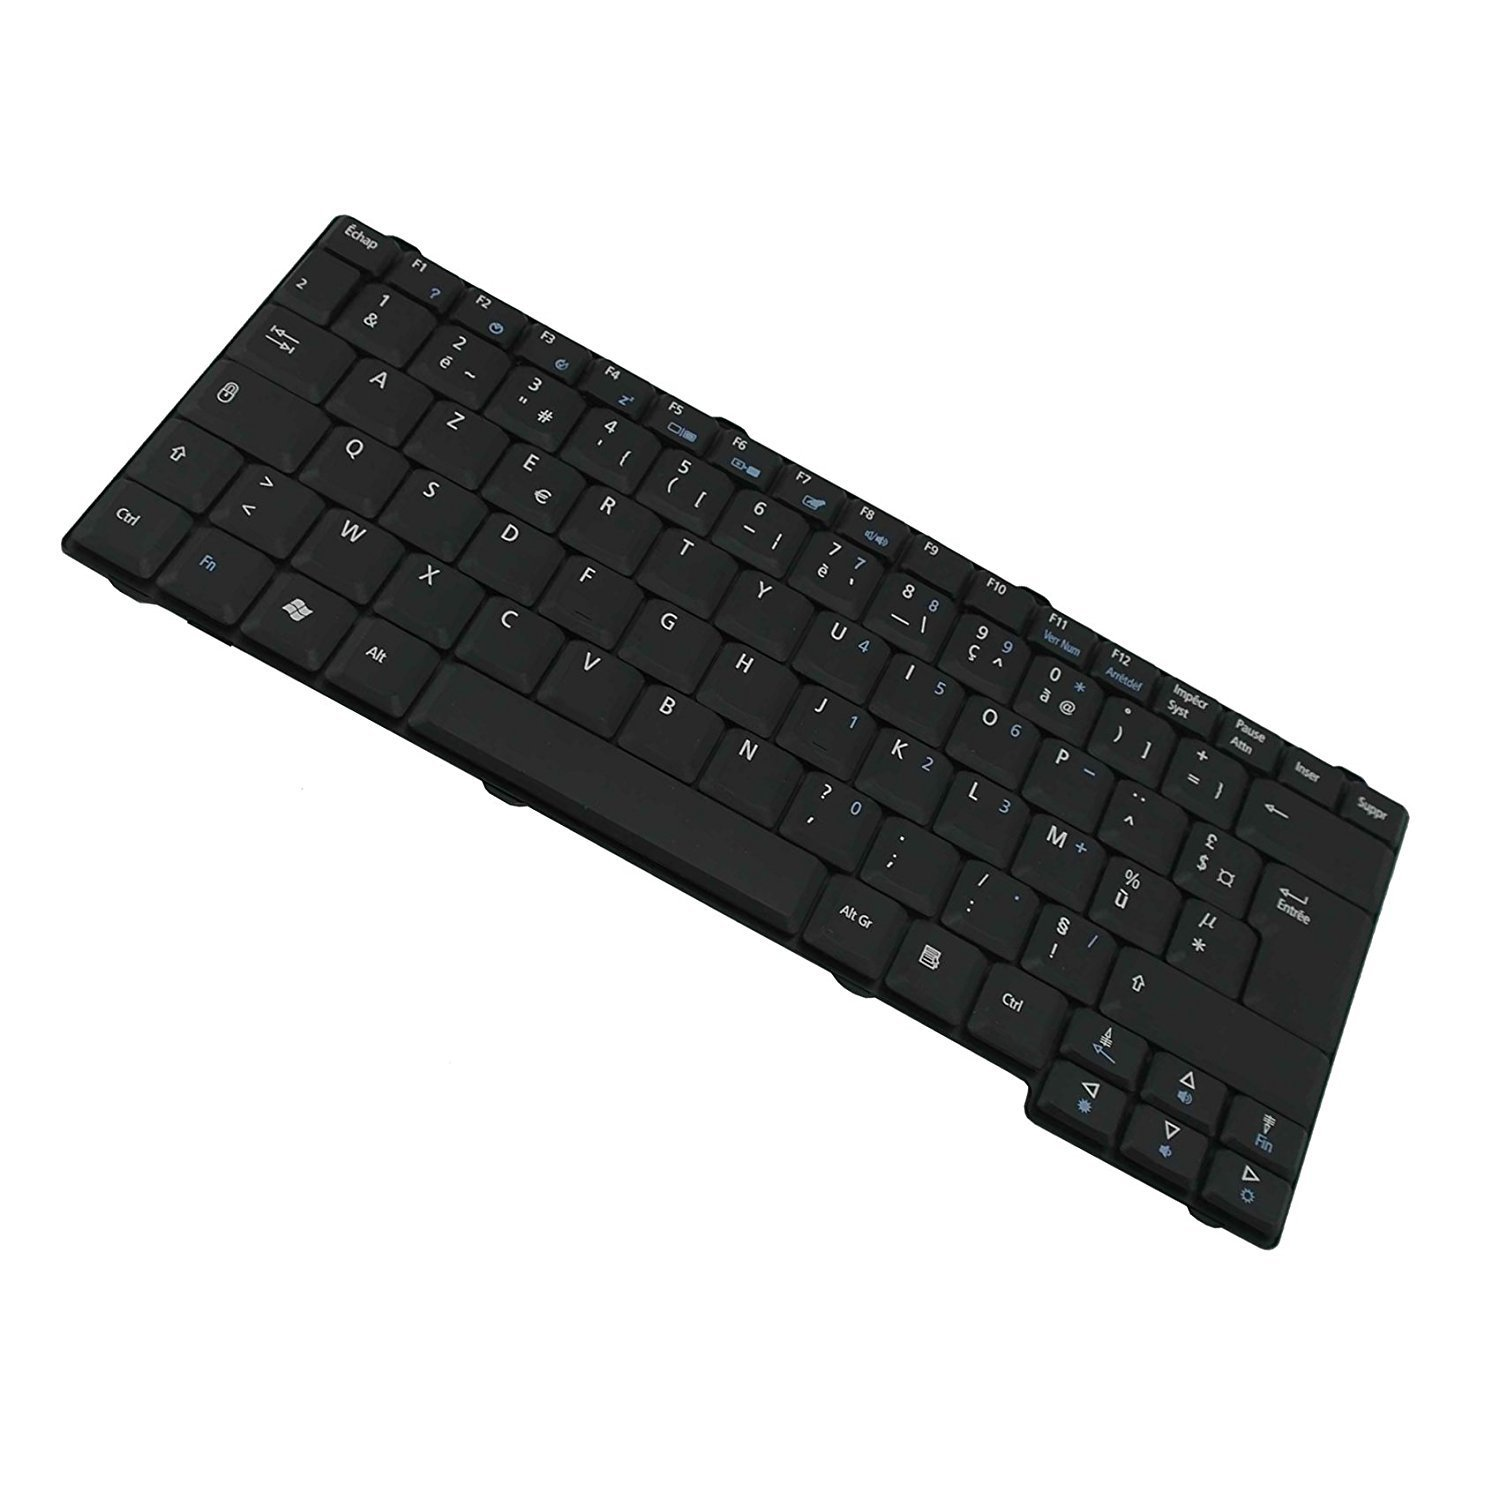 YEECHUN Black FR French AZERTY Keyboard France Clavier For Fujitsu SIEMENS Amilo M7400 Series New Notebook Replacement Accessories